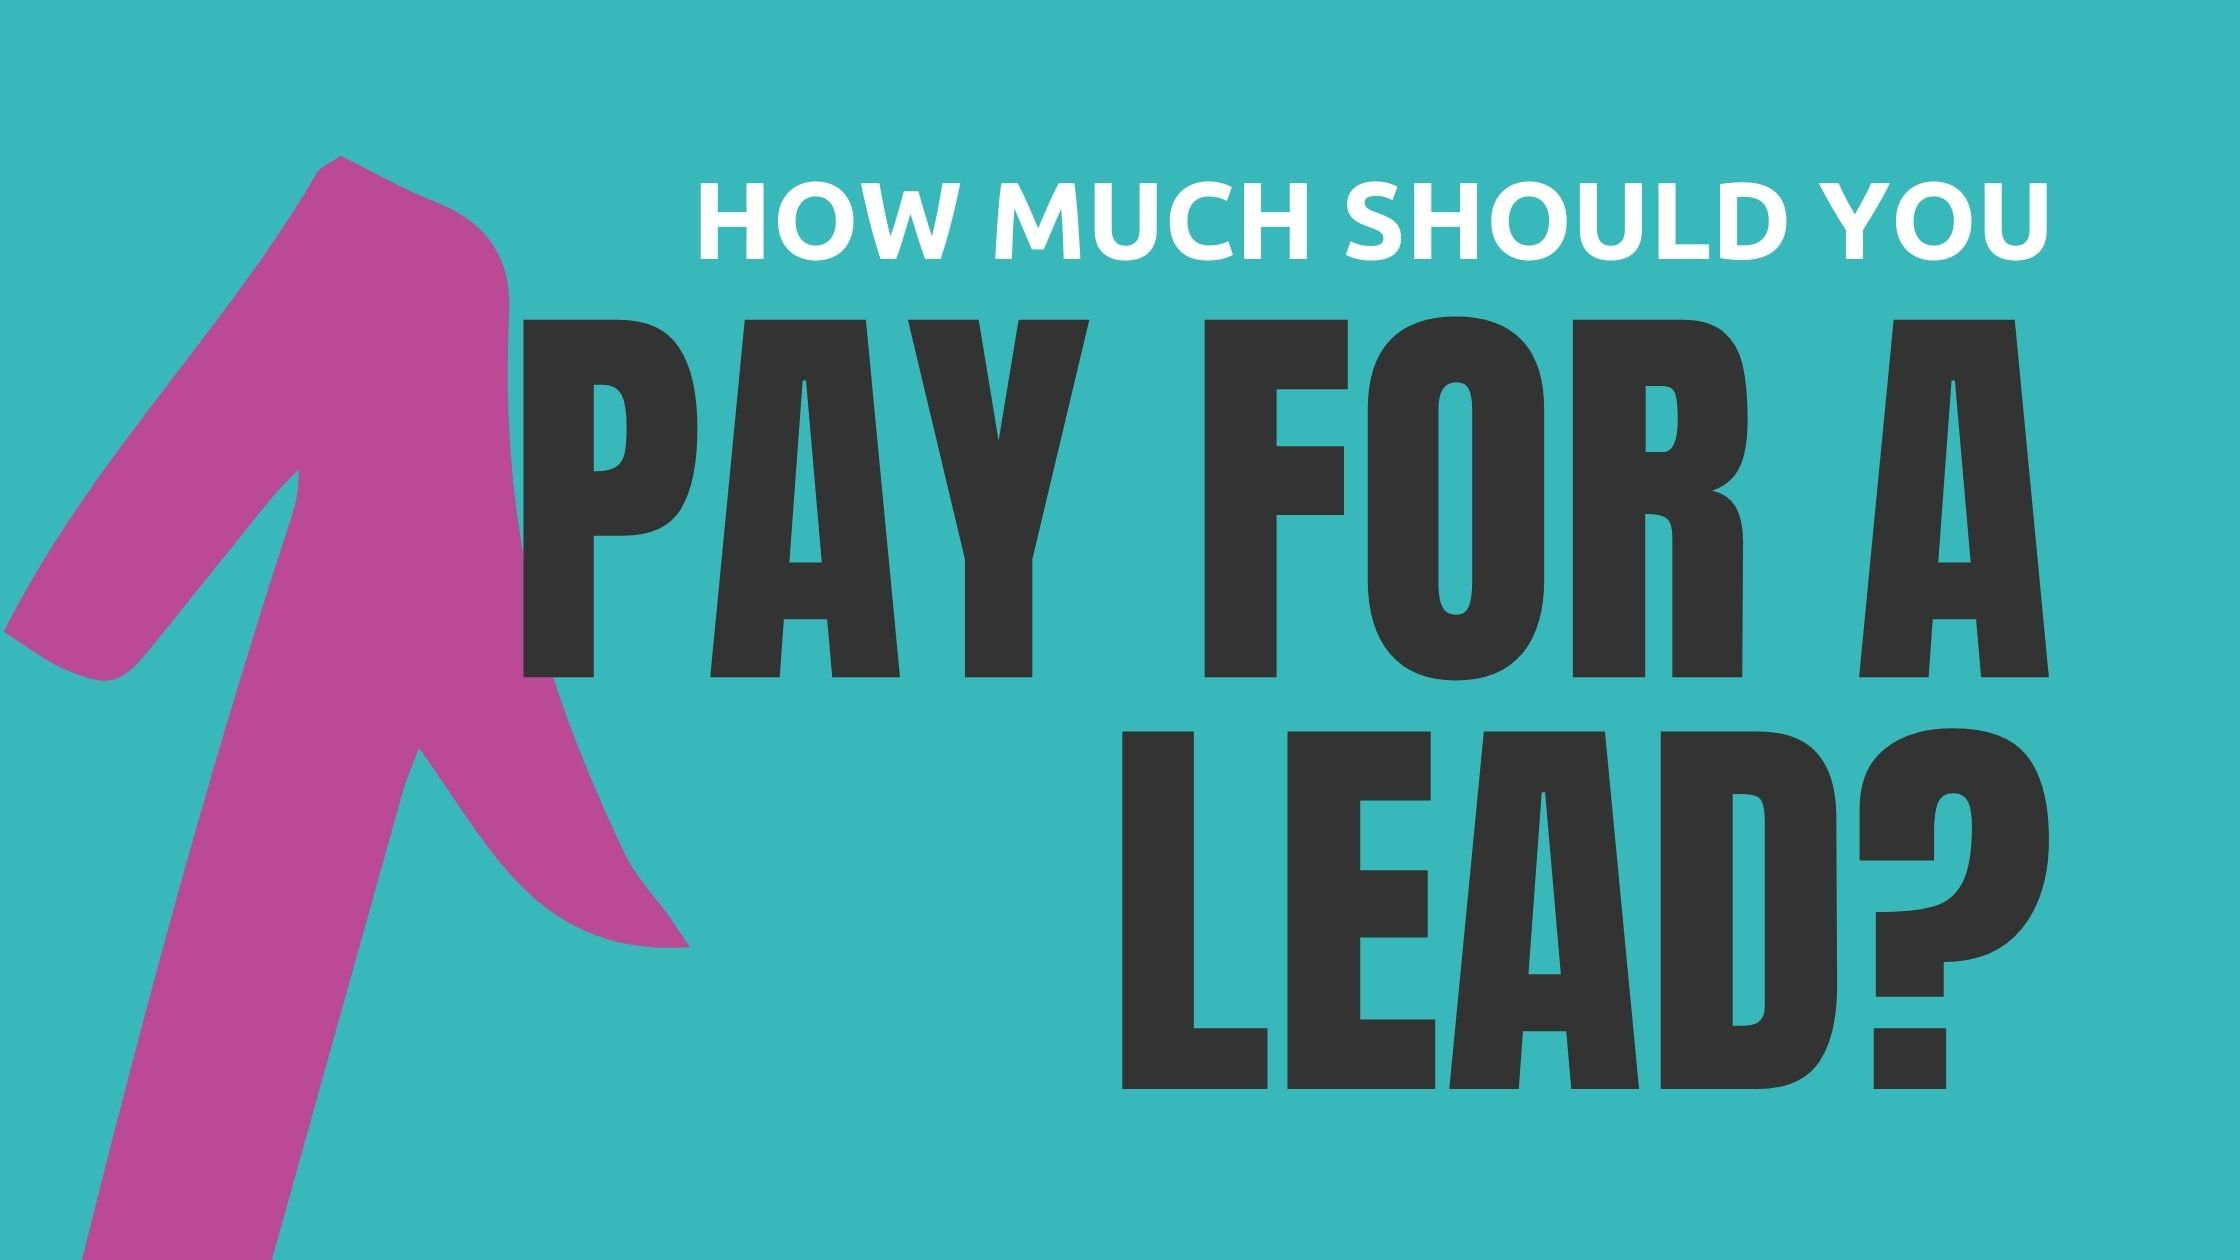 HOW MUCH SHOULD YOU PAY FOR A LEAD